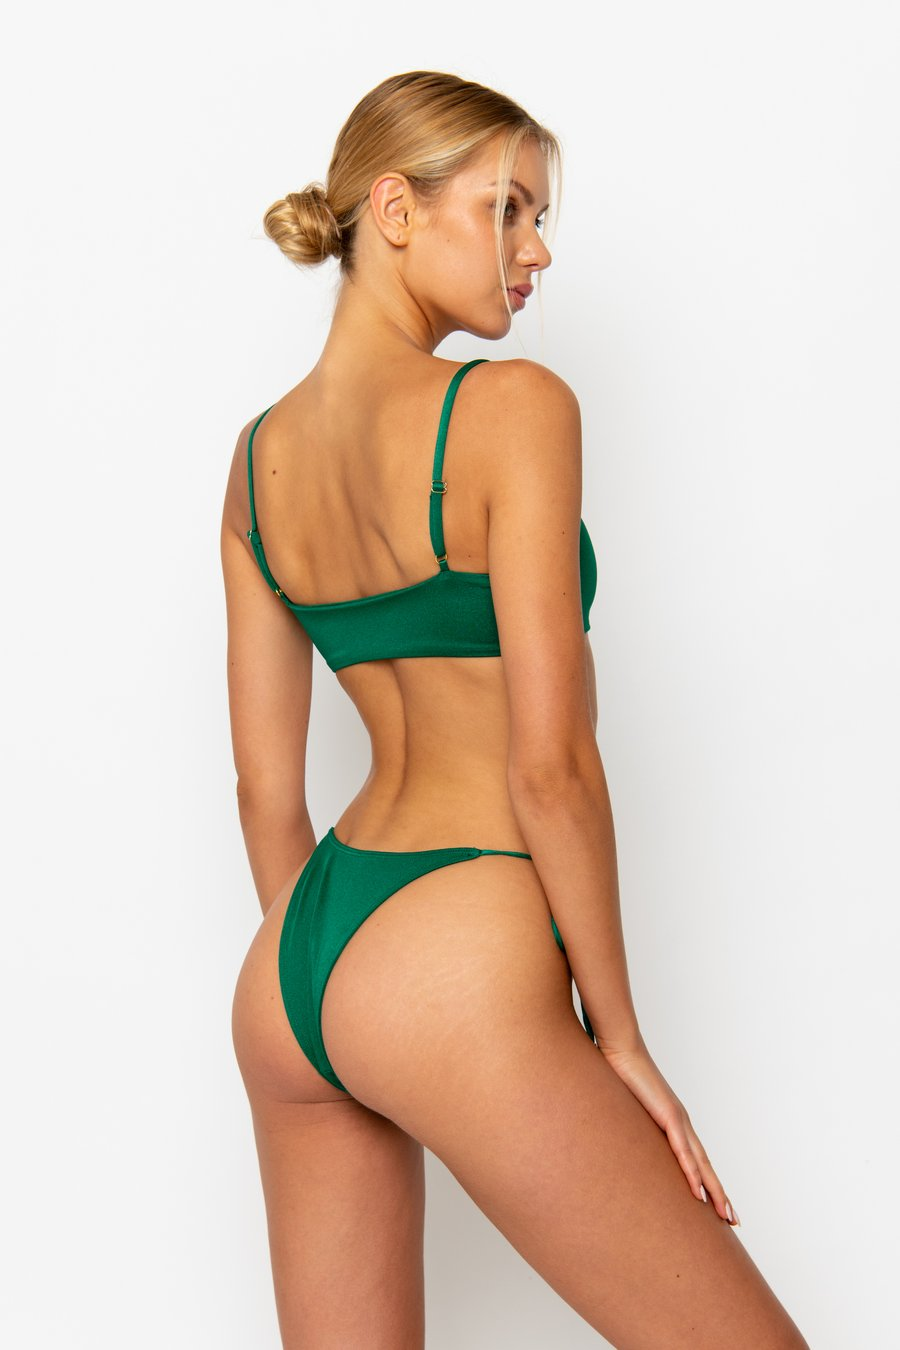 CARA Emerald - Brazilian Bikini Bottoms by Sommer Swim, available on sommerswim.com for $69 Bella Hadid Shorts SIMILAR PRODUCT